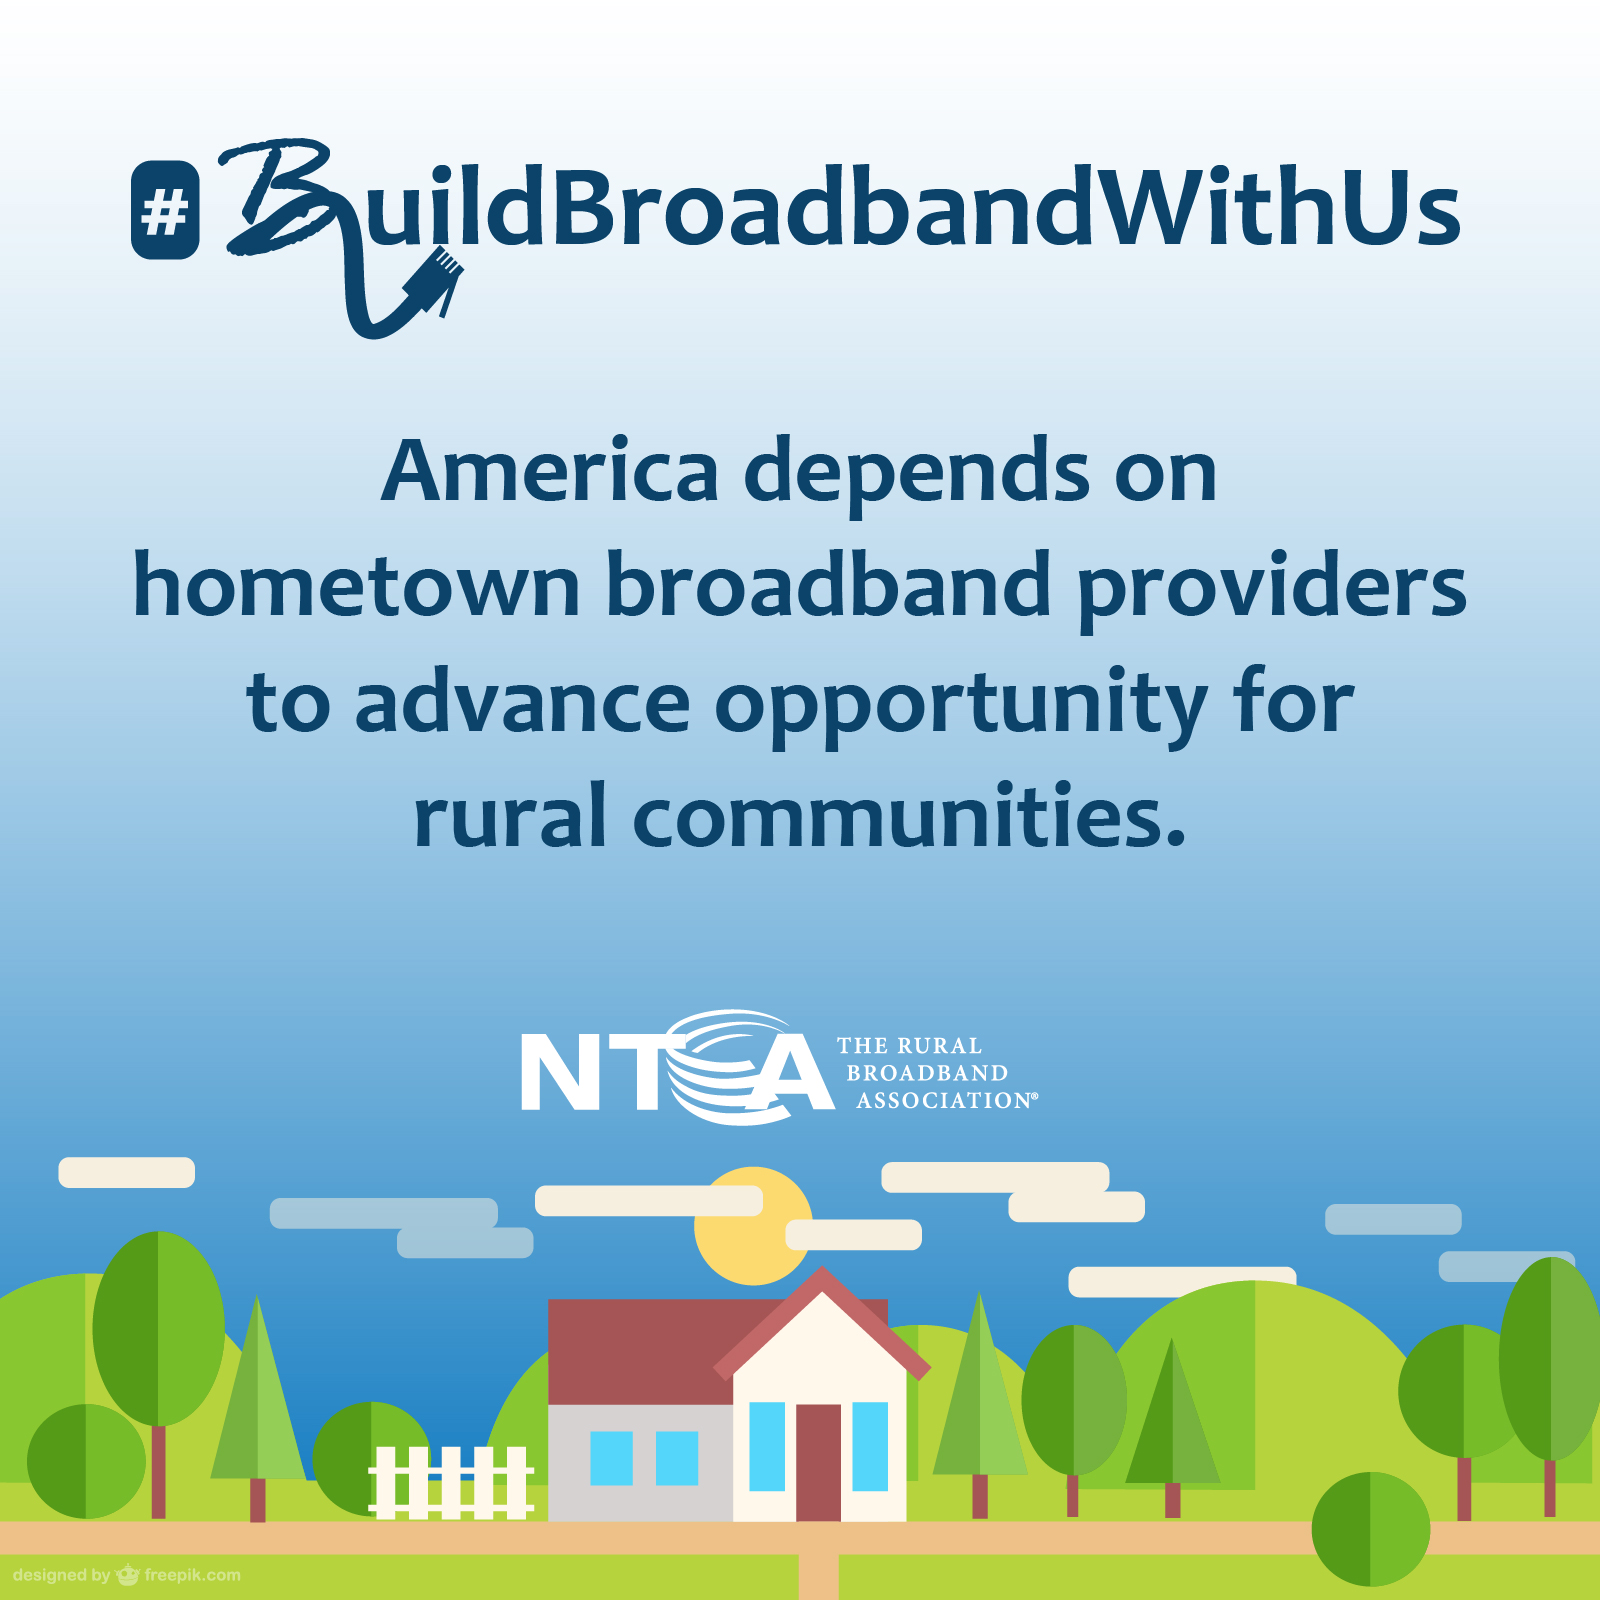 America depends on hometown broadband providers to advance opportunity for rural communities.